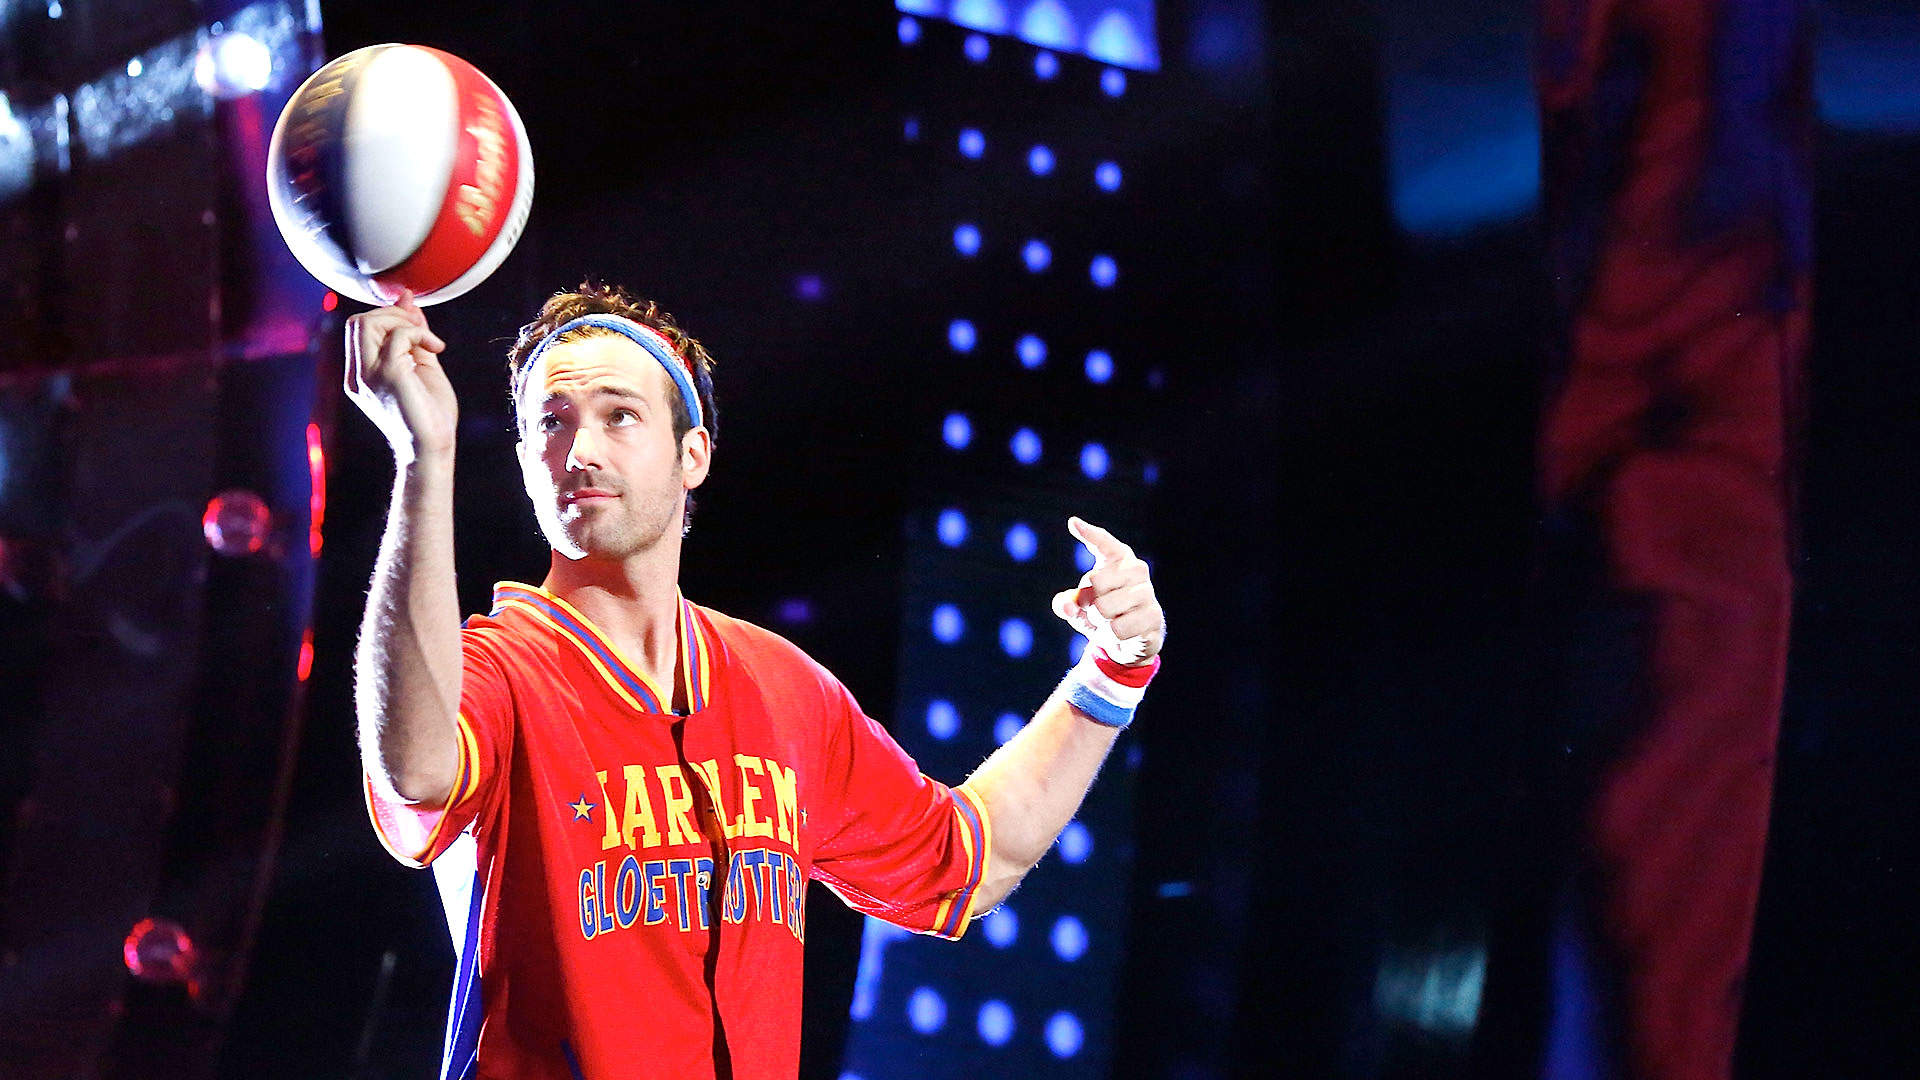 """Jeff Dye walks the talk on NBC's """"I Can Do That"""""""